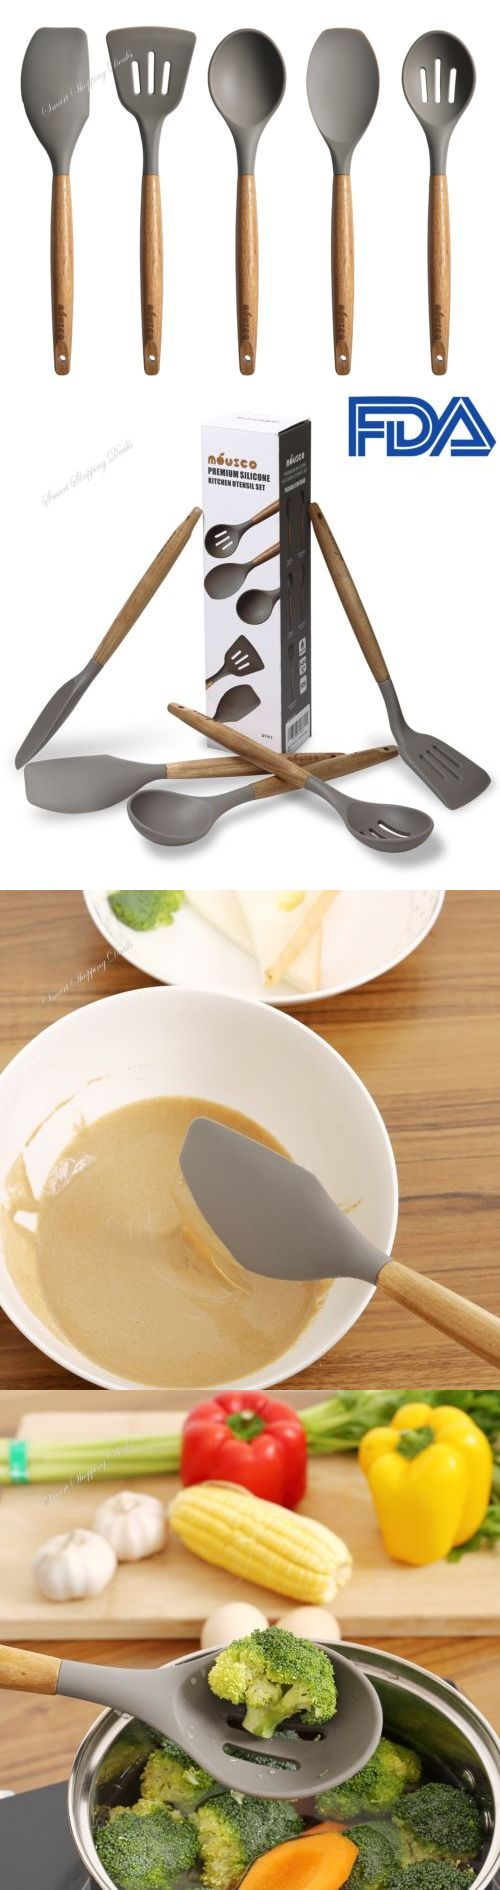 Cooking Utensils 20649: 5 Piece Silicone Cooking Utensil Set With Natura Wood Handle Kitchen Utensils -> BUY IT NOW ONLY: $31.36 on eBay!